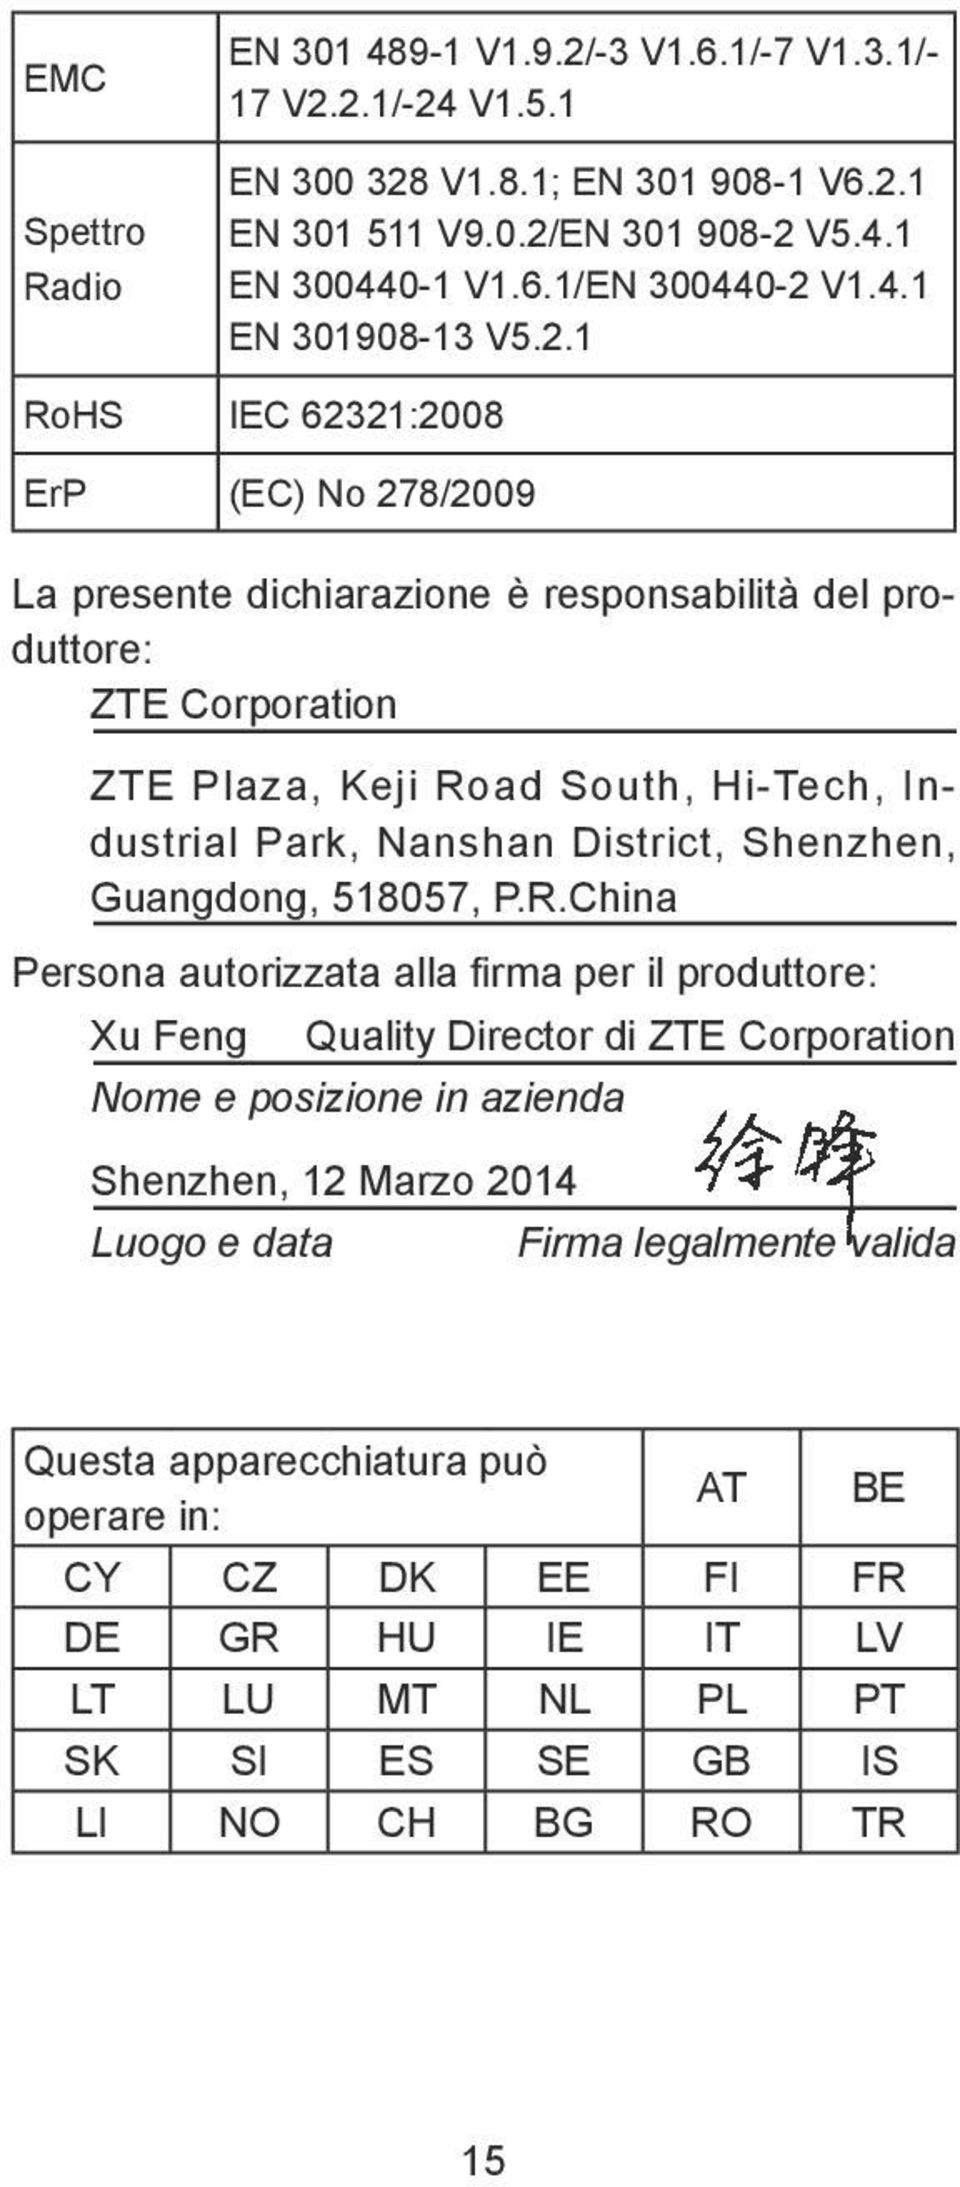 1 RoHS IEC 62321:2008 ErP (EC) No 278/2009 La presente dichiarazione è responsabilità del produttore: ZTE Corporation ZTE Plaza, Keji Road South, Hi-Tech, Industrial Park, Nanshan District,